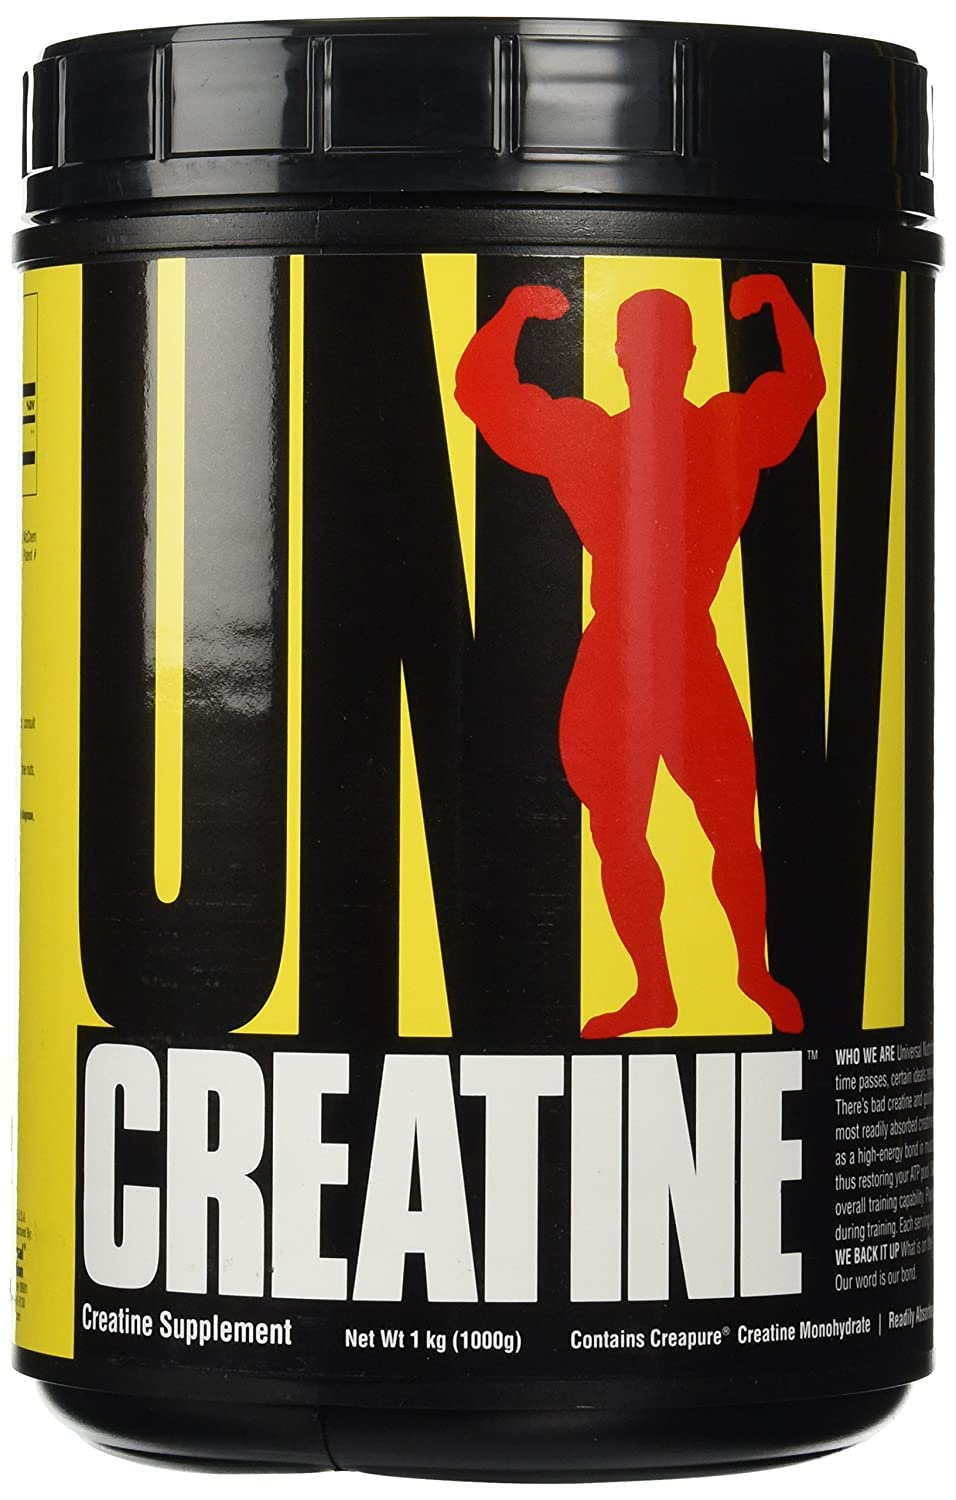 Creatine Powder, 100 Pure Creatine Monohydrate, 1000g, From Universal Nutrition